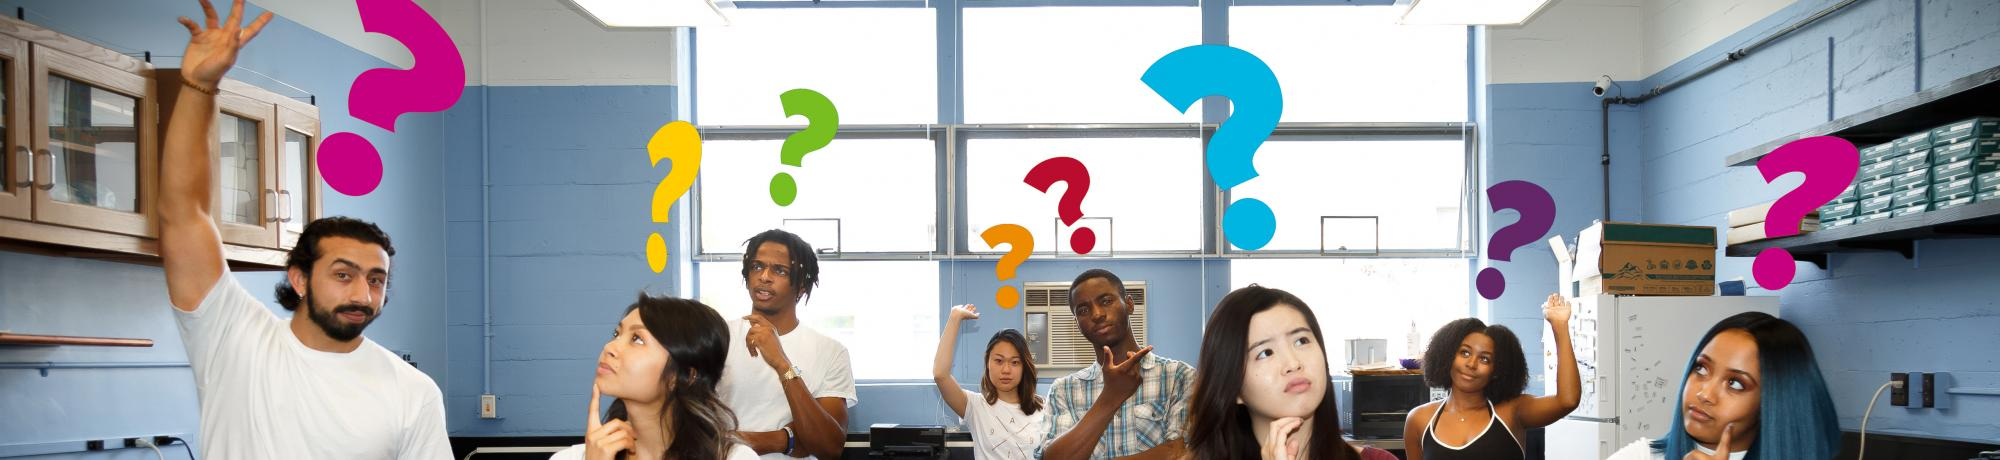 Students asking questions